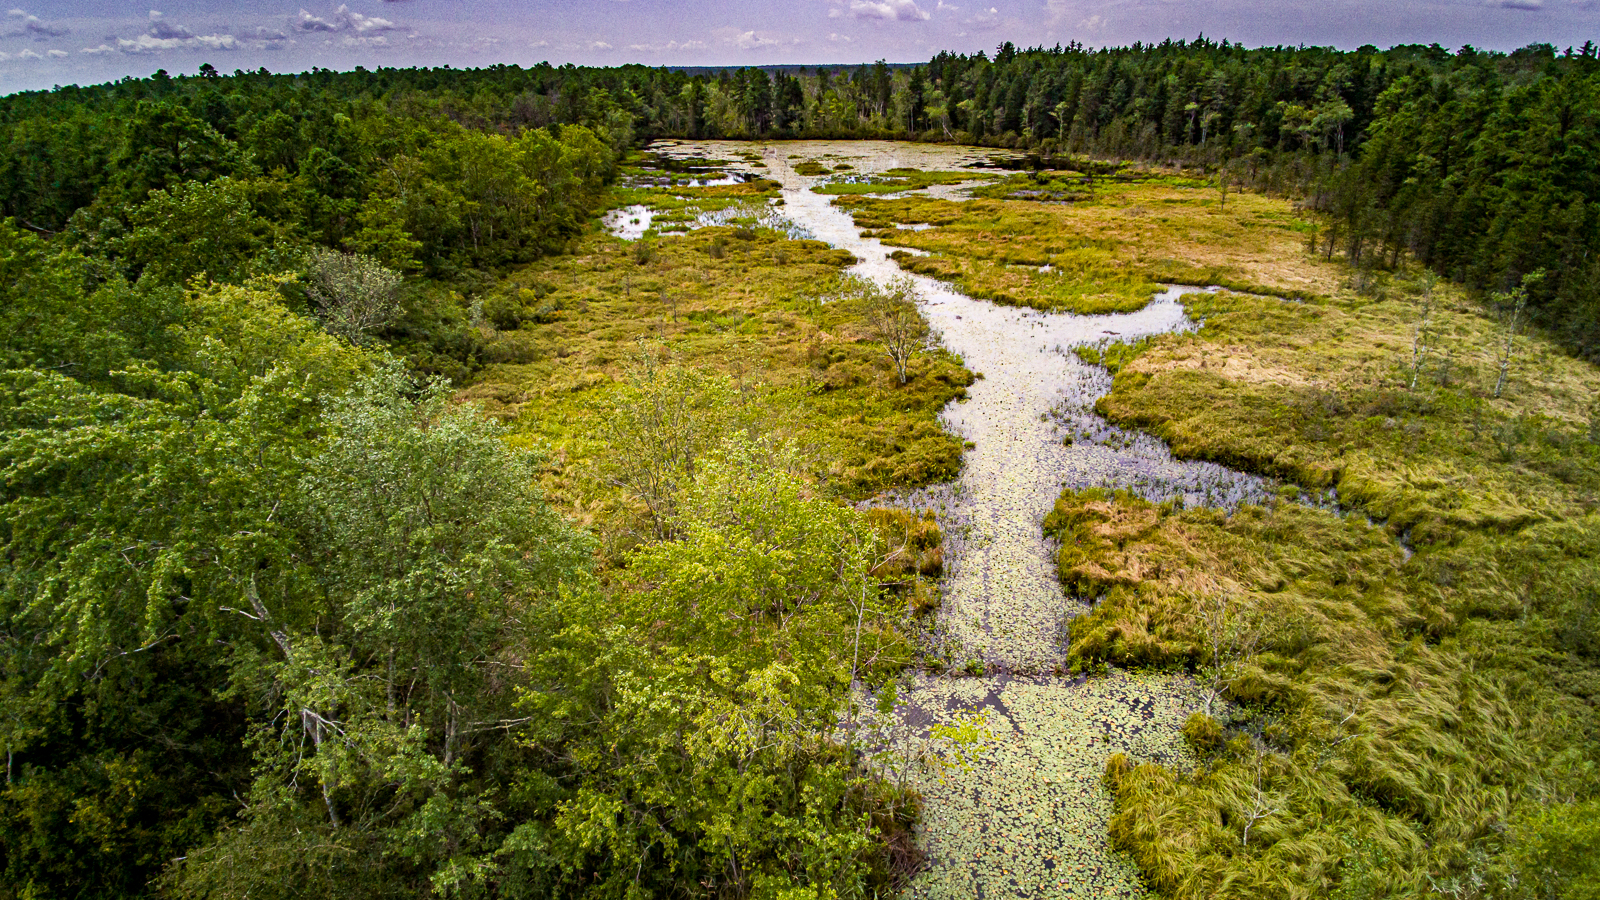 Photograph of the Pinelands at Friendship NJ